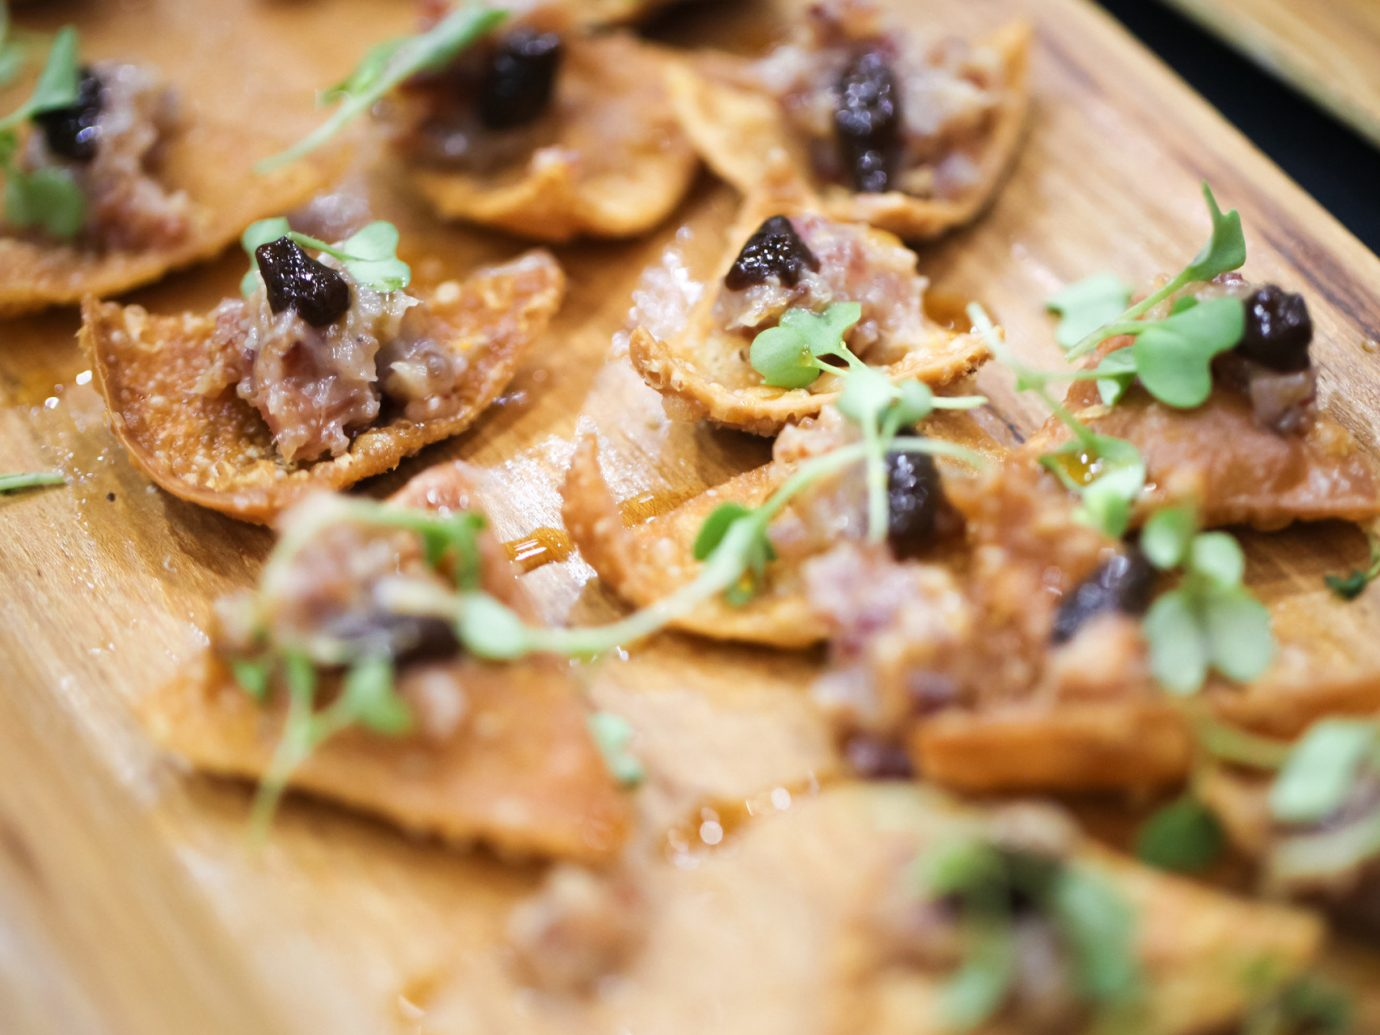 appetizer chips Dining Eat food Food + Drink gourmet Trip Ideas dish wooden cuisine piece slice meal produce meat breakfast vegetable close pizza